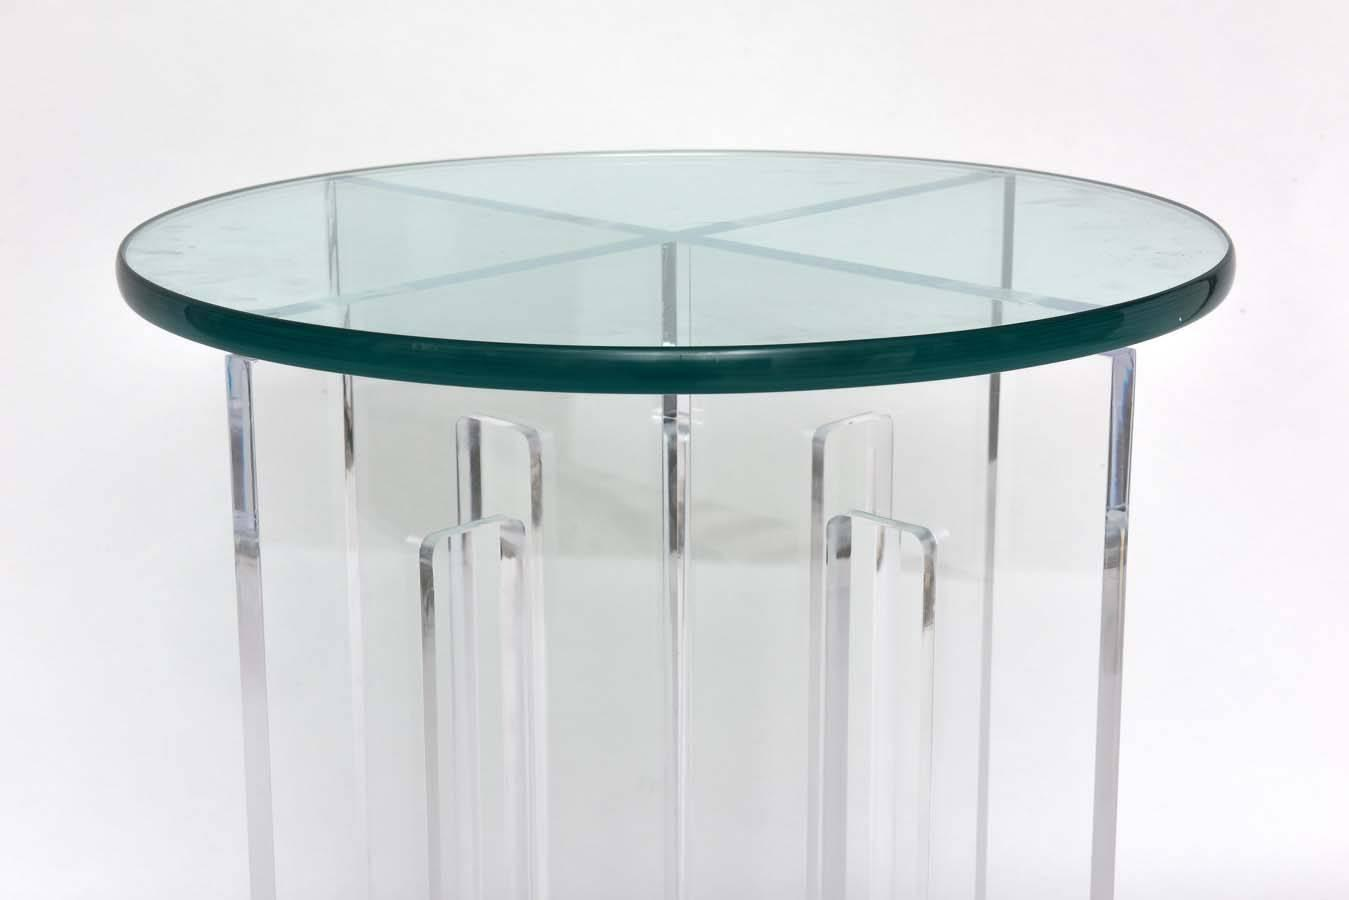 Pair of Bespoke Round Lucite and Glass Side Tables at 1stdibs